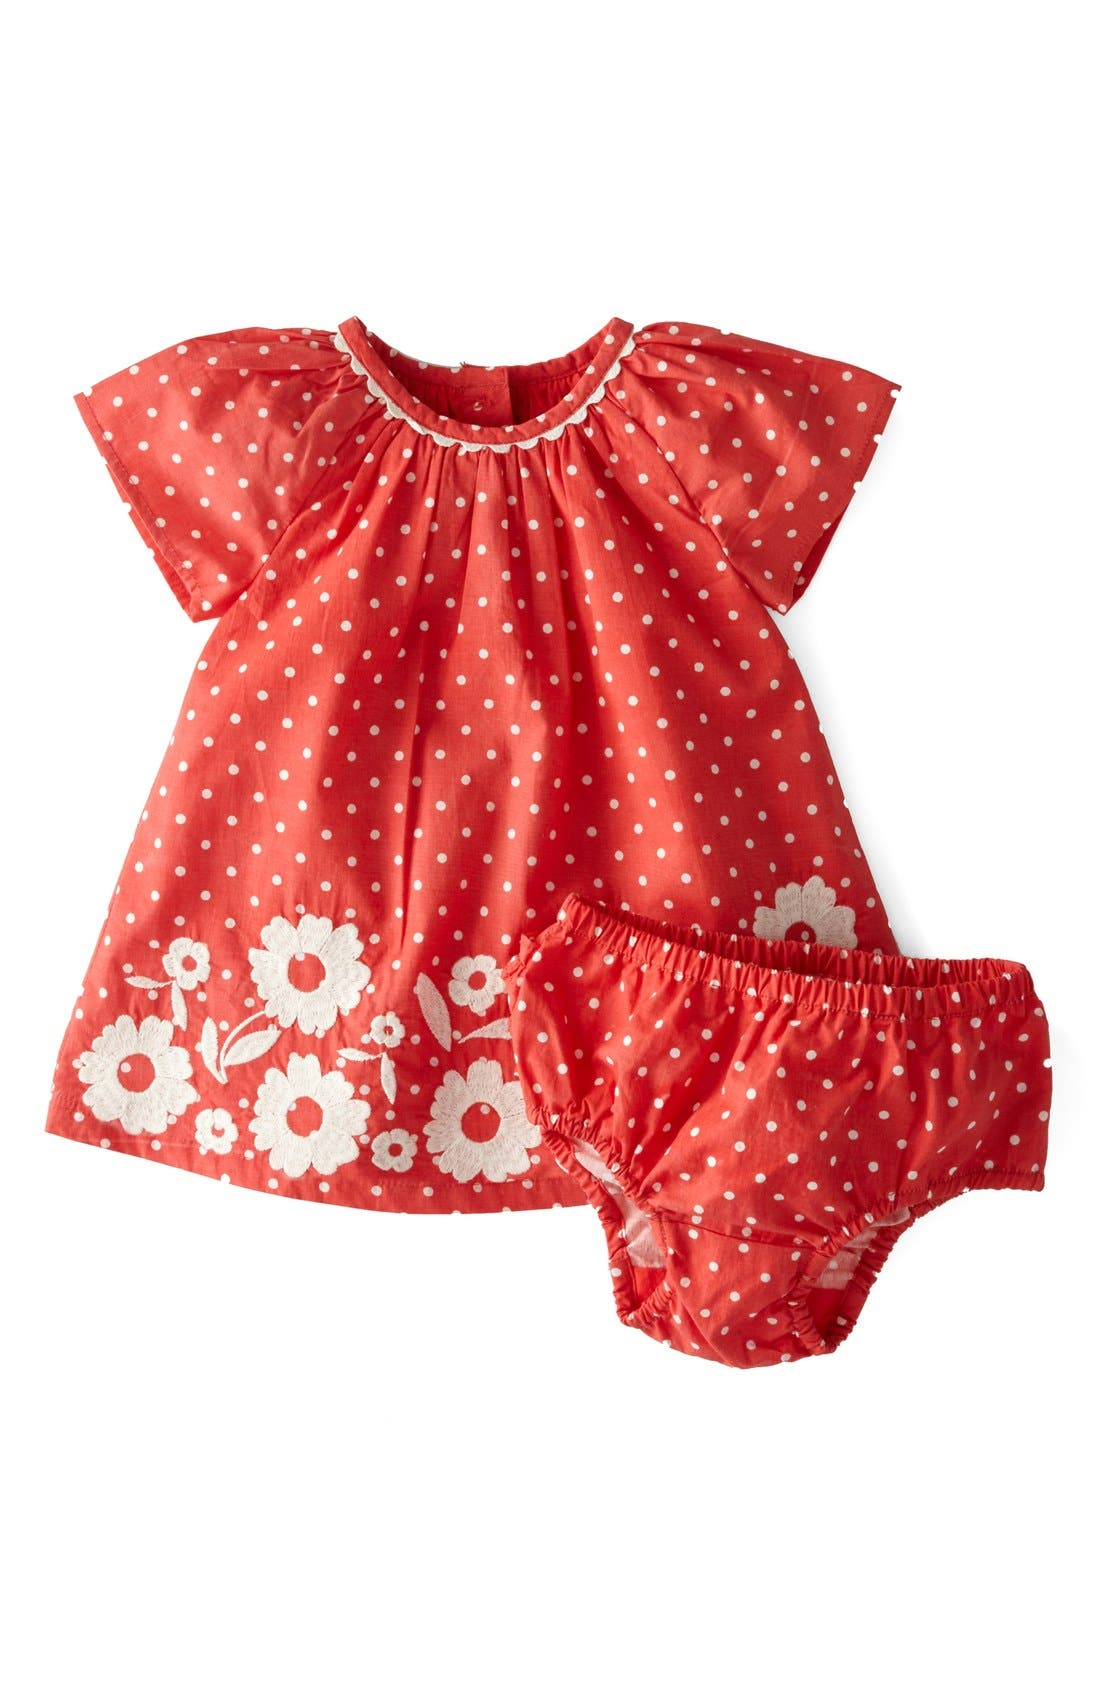 Main Image - Mini Boden Embroidered Summer Cotton Poplin A-Line Dress (Baby Girls)